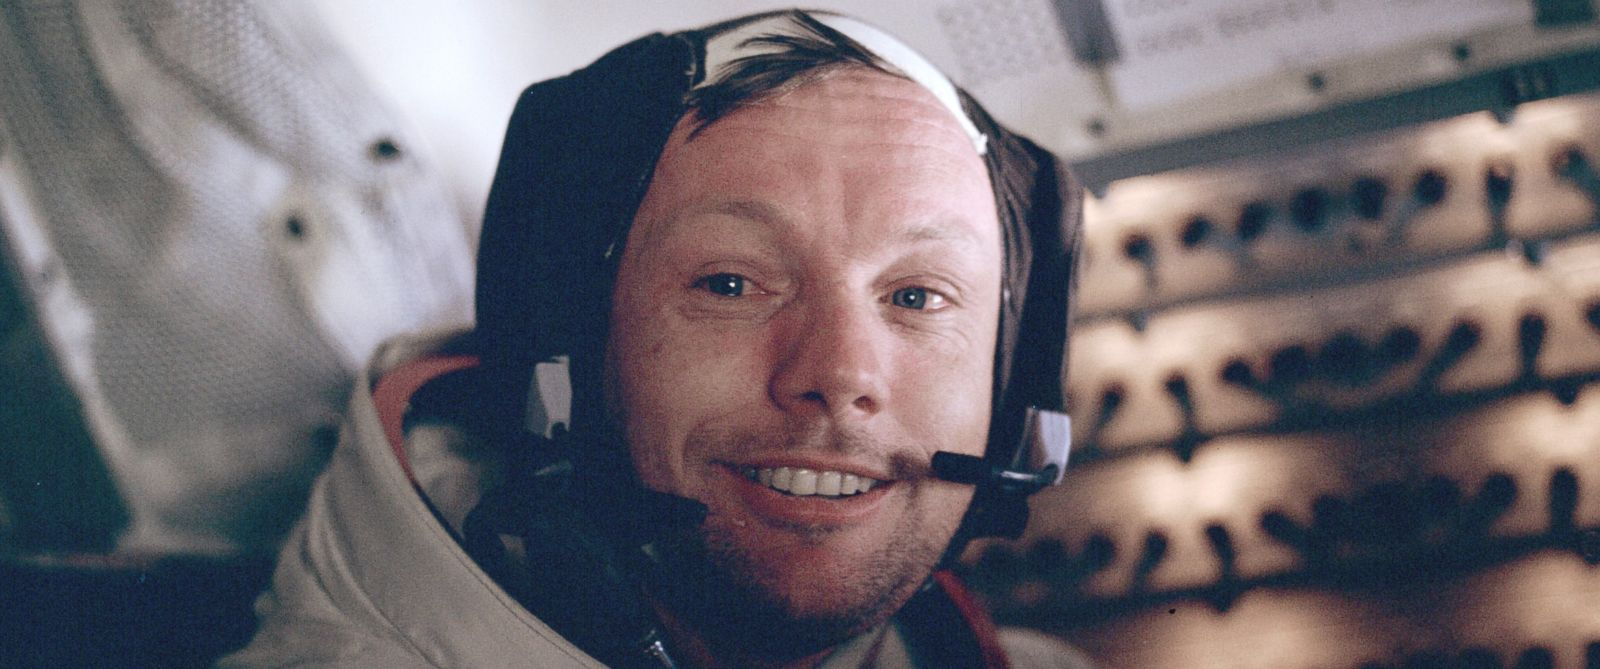 PHOTO: Neil Armstrong in the cabin during the Apollo 11 mission on July 21, 1969.